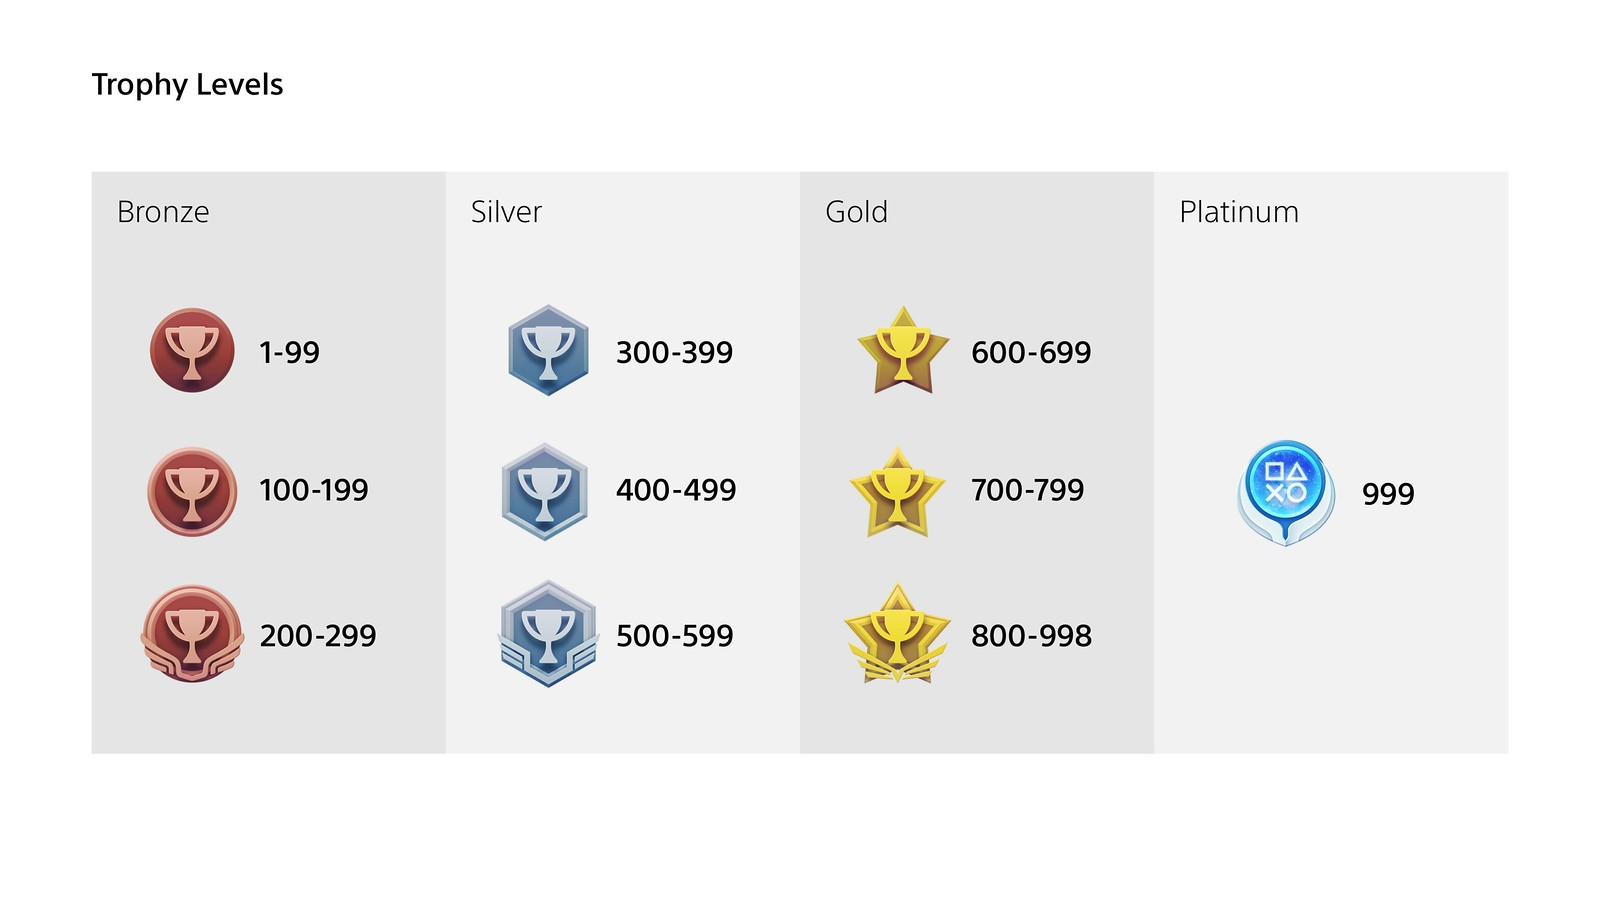 new playstation trophy system